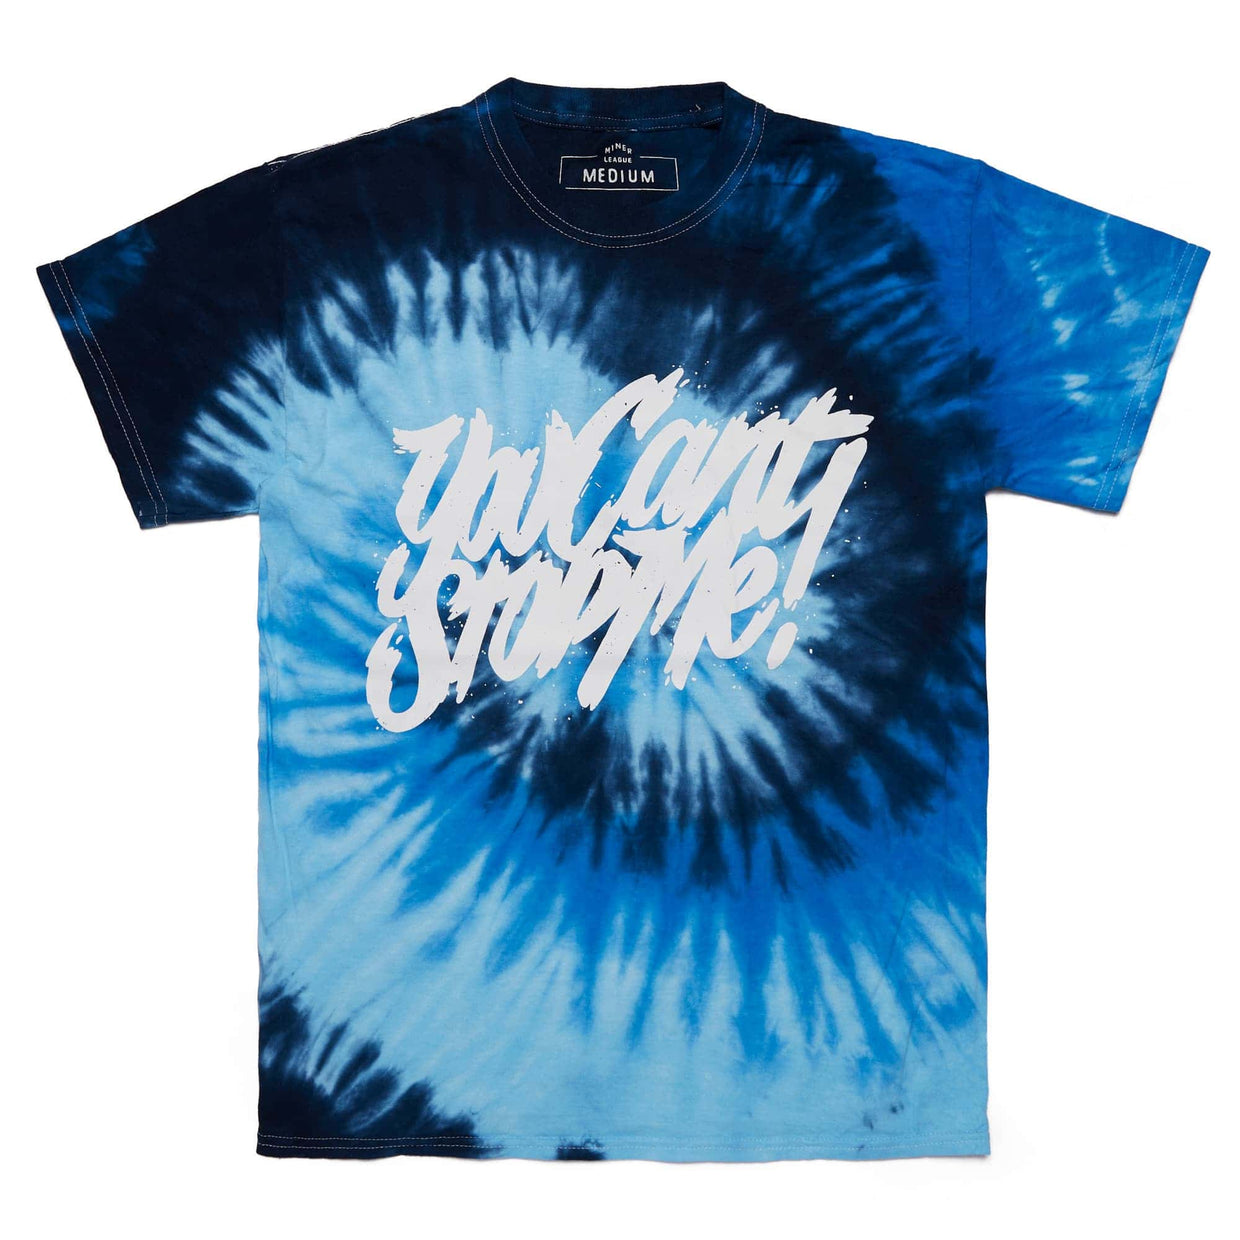 'You Can't Stop Me' Spider Royal Tie Dye Tee